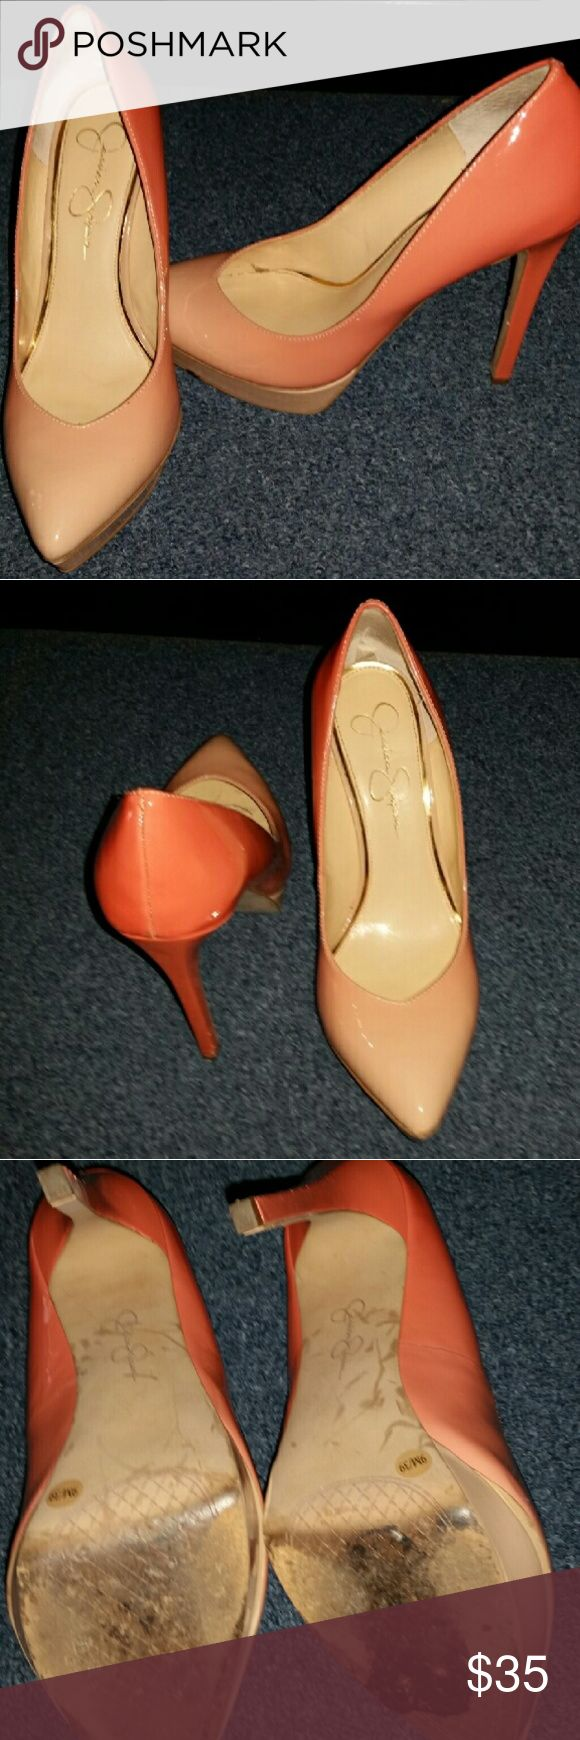 Jessica Simpson Ombre Peach Heels Beautiful ombre peach jessica simpson heels.   Worn a few times to work.   Great condition.   Great pop out color. jessica simpson  Shoes Heels